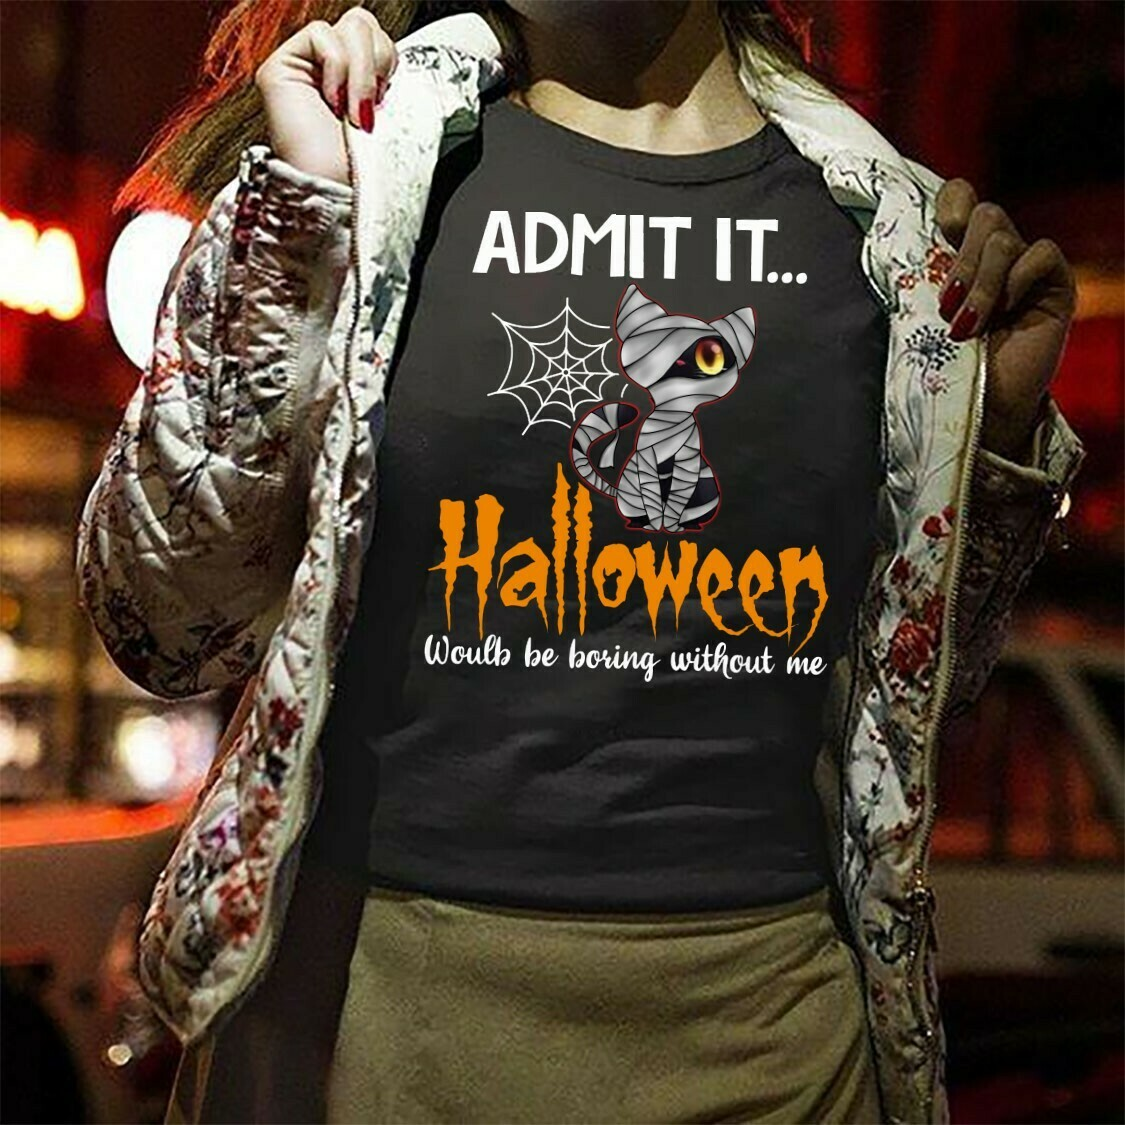 Black Cat Admit It Halloween Would Be Boring Without Me Mummy Black Cat Not So Scary Gifts For Loves Halloween Family Vacation Party TShirt Long Sleeve Sweatshirt Hoodie Jolly Family Gifts